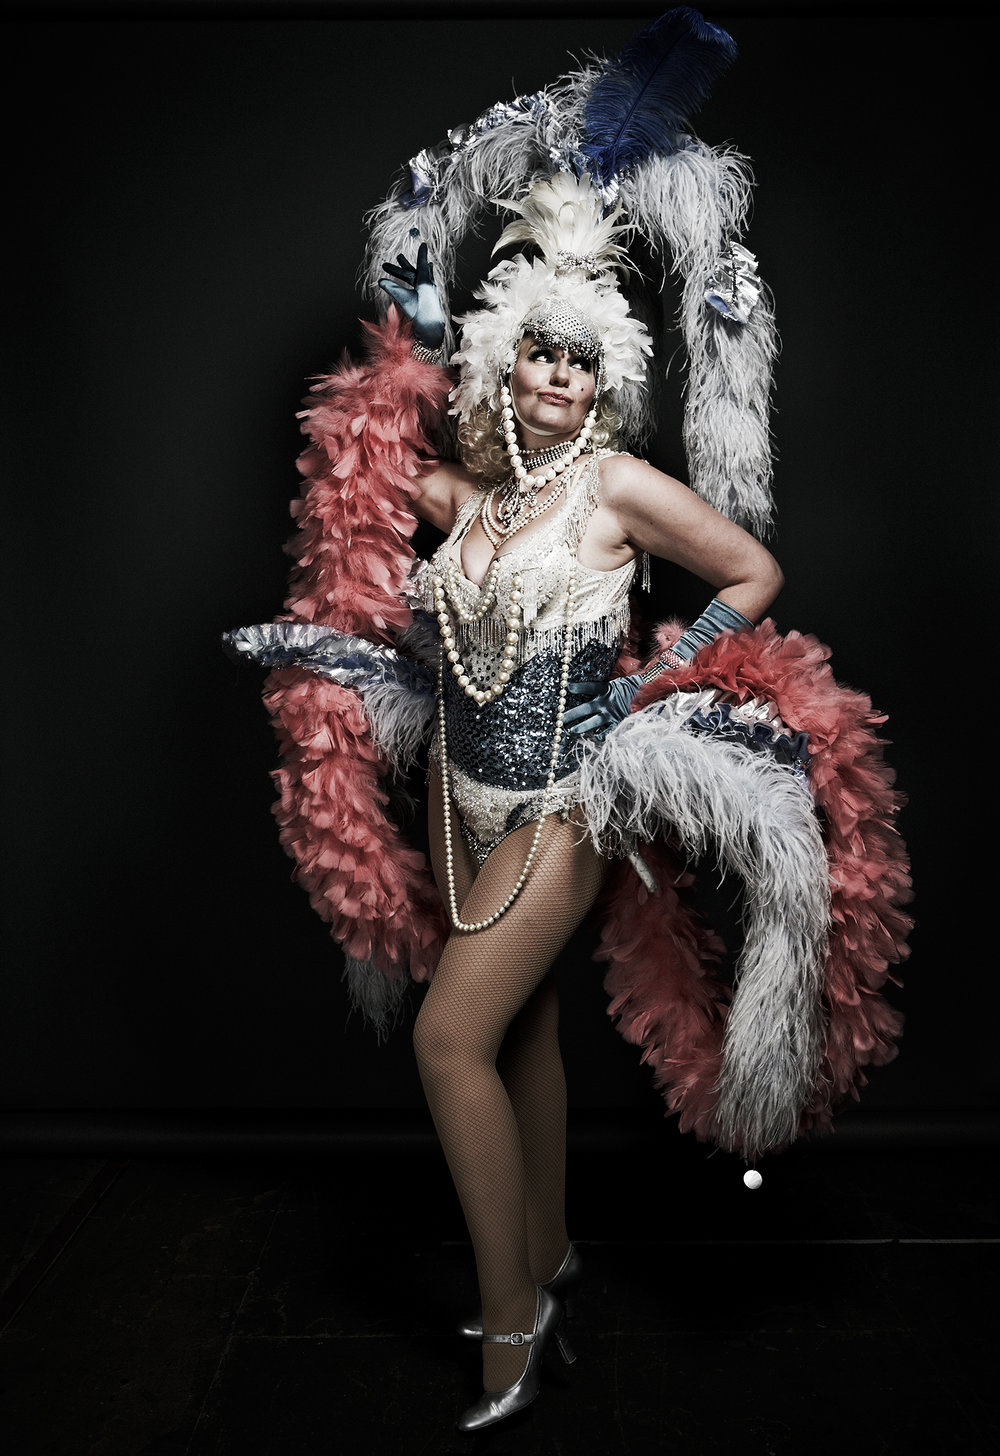 Showgirl - Los Angeles, CA